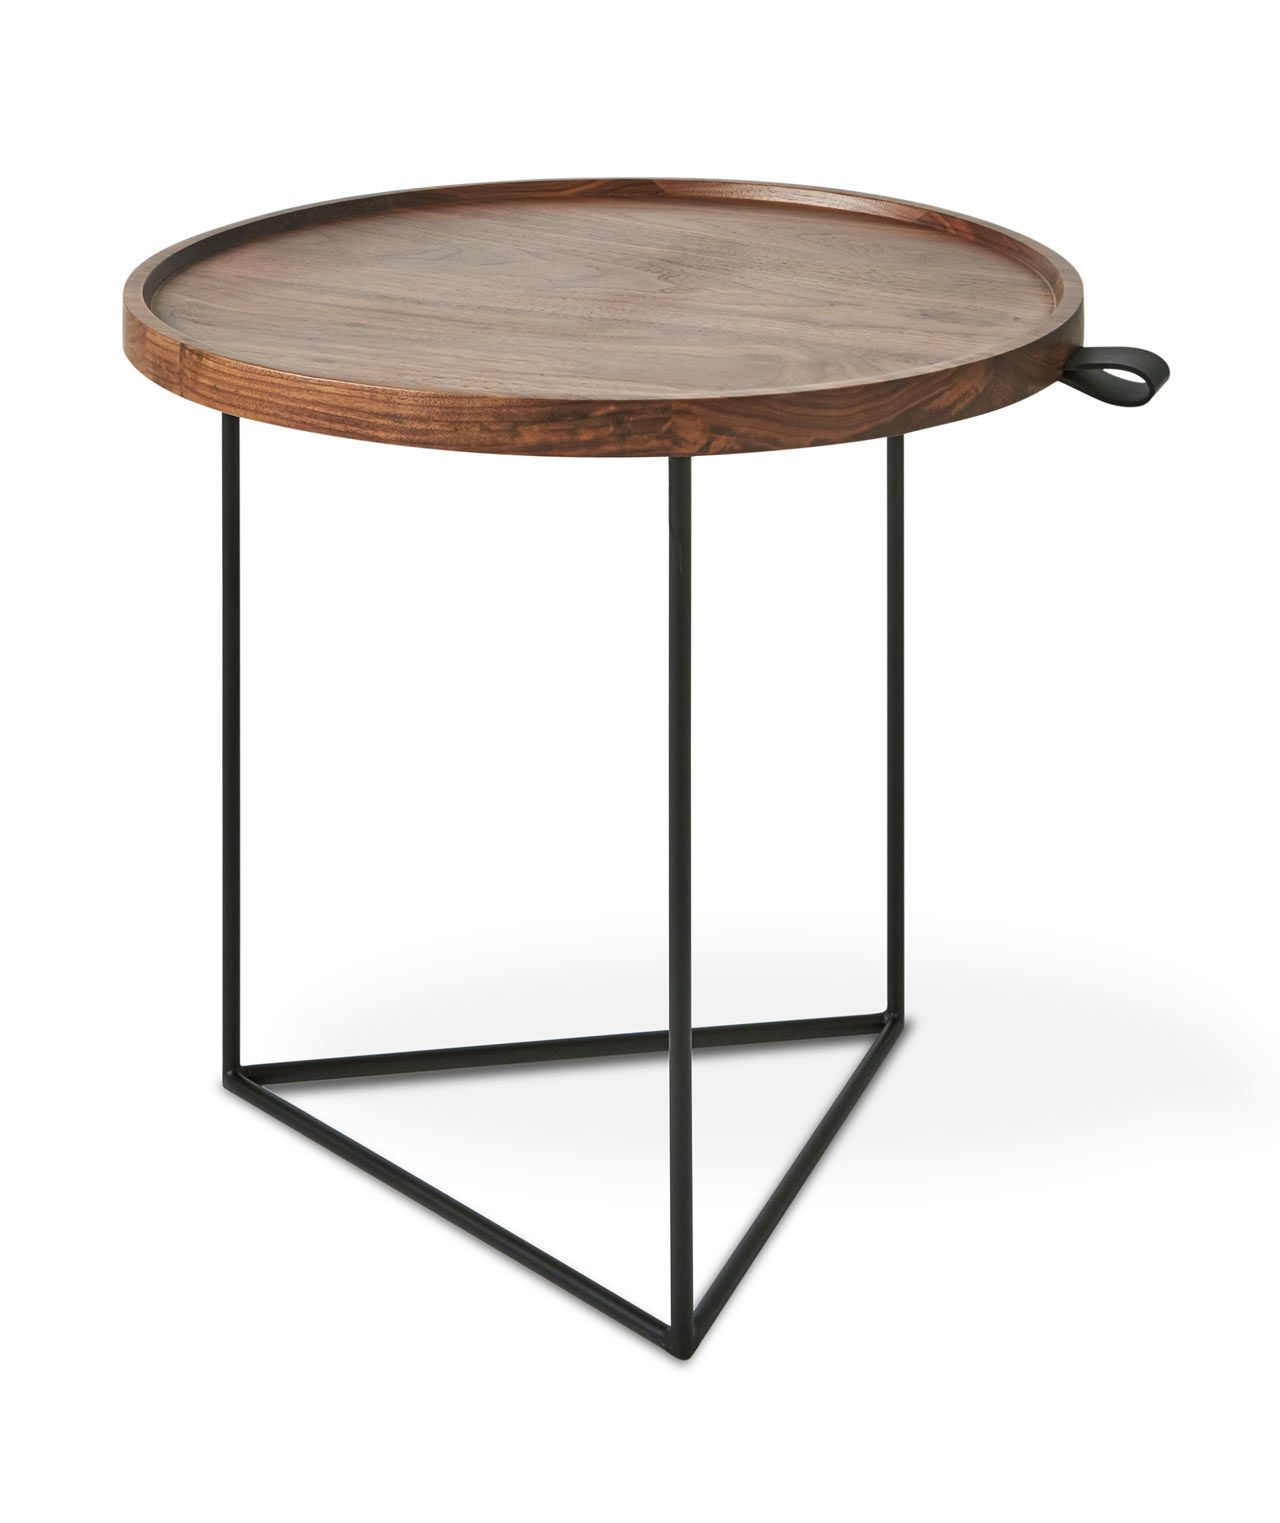 Gus Modern Launches Spring 2017 Collection Gus Modern Furniture Modern Accent Tables Gus Modern [ 1523 x 1280 Pixel ]